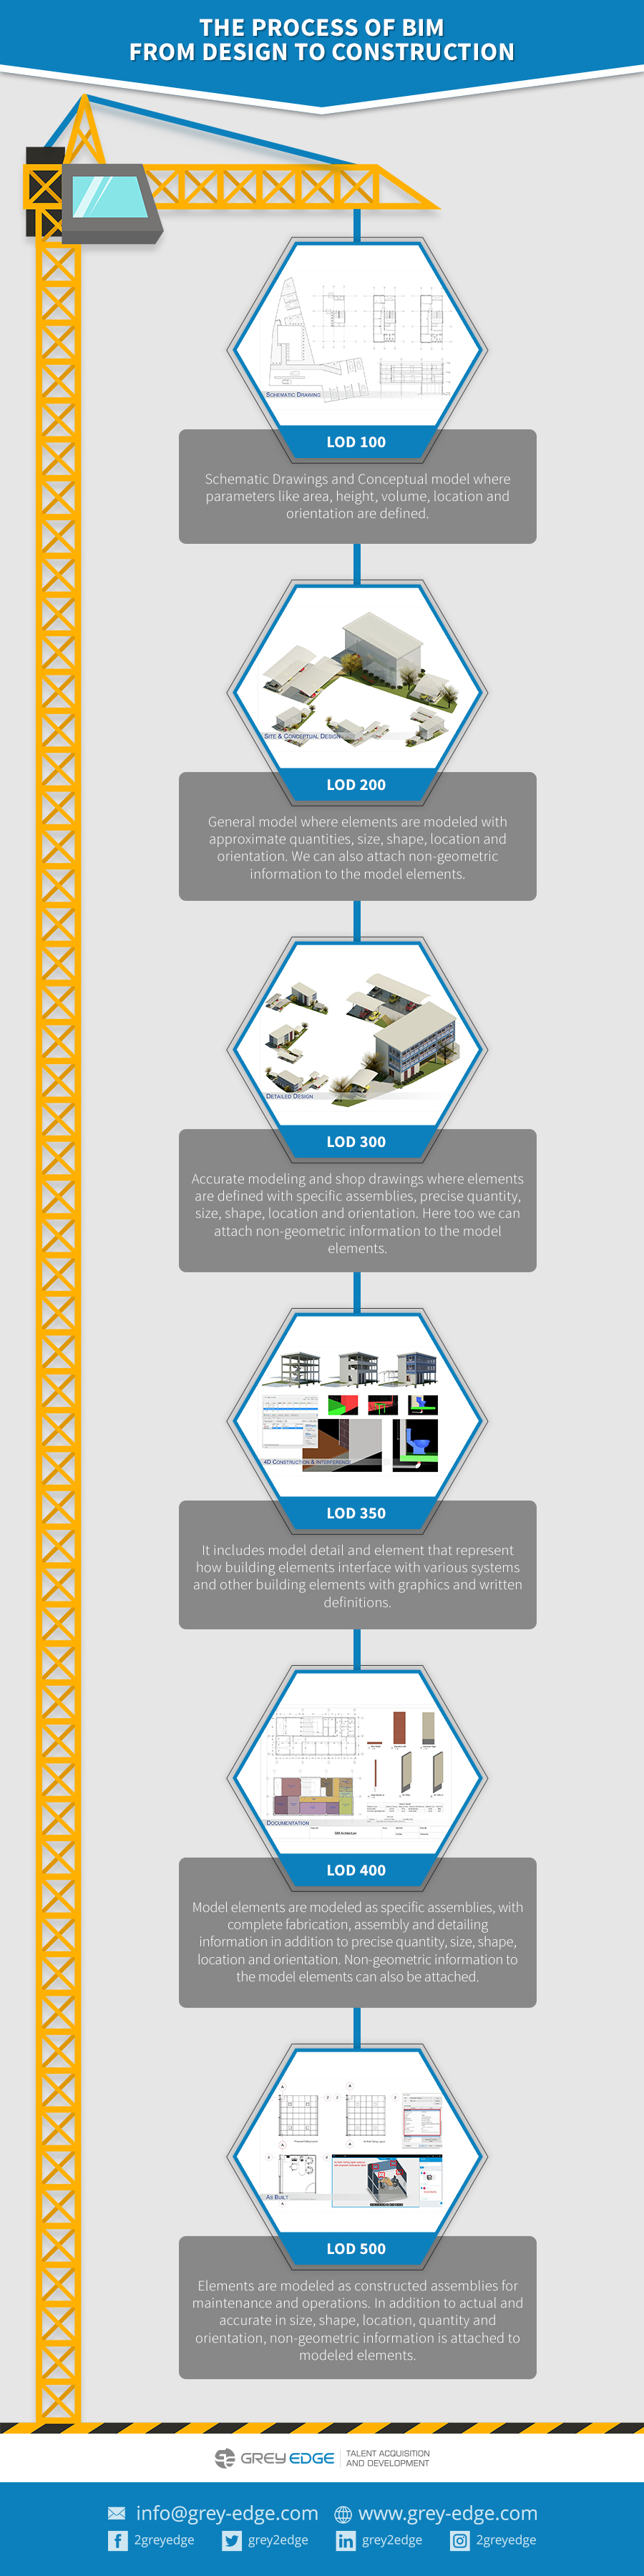 The-Process-of-BIM-from-Design-to-Construction